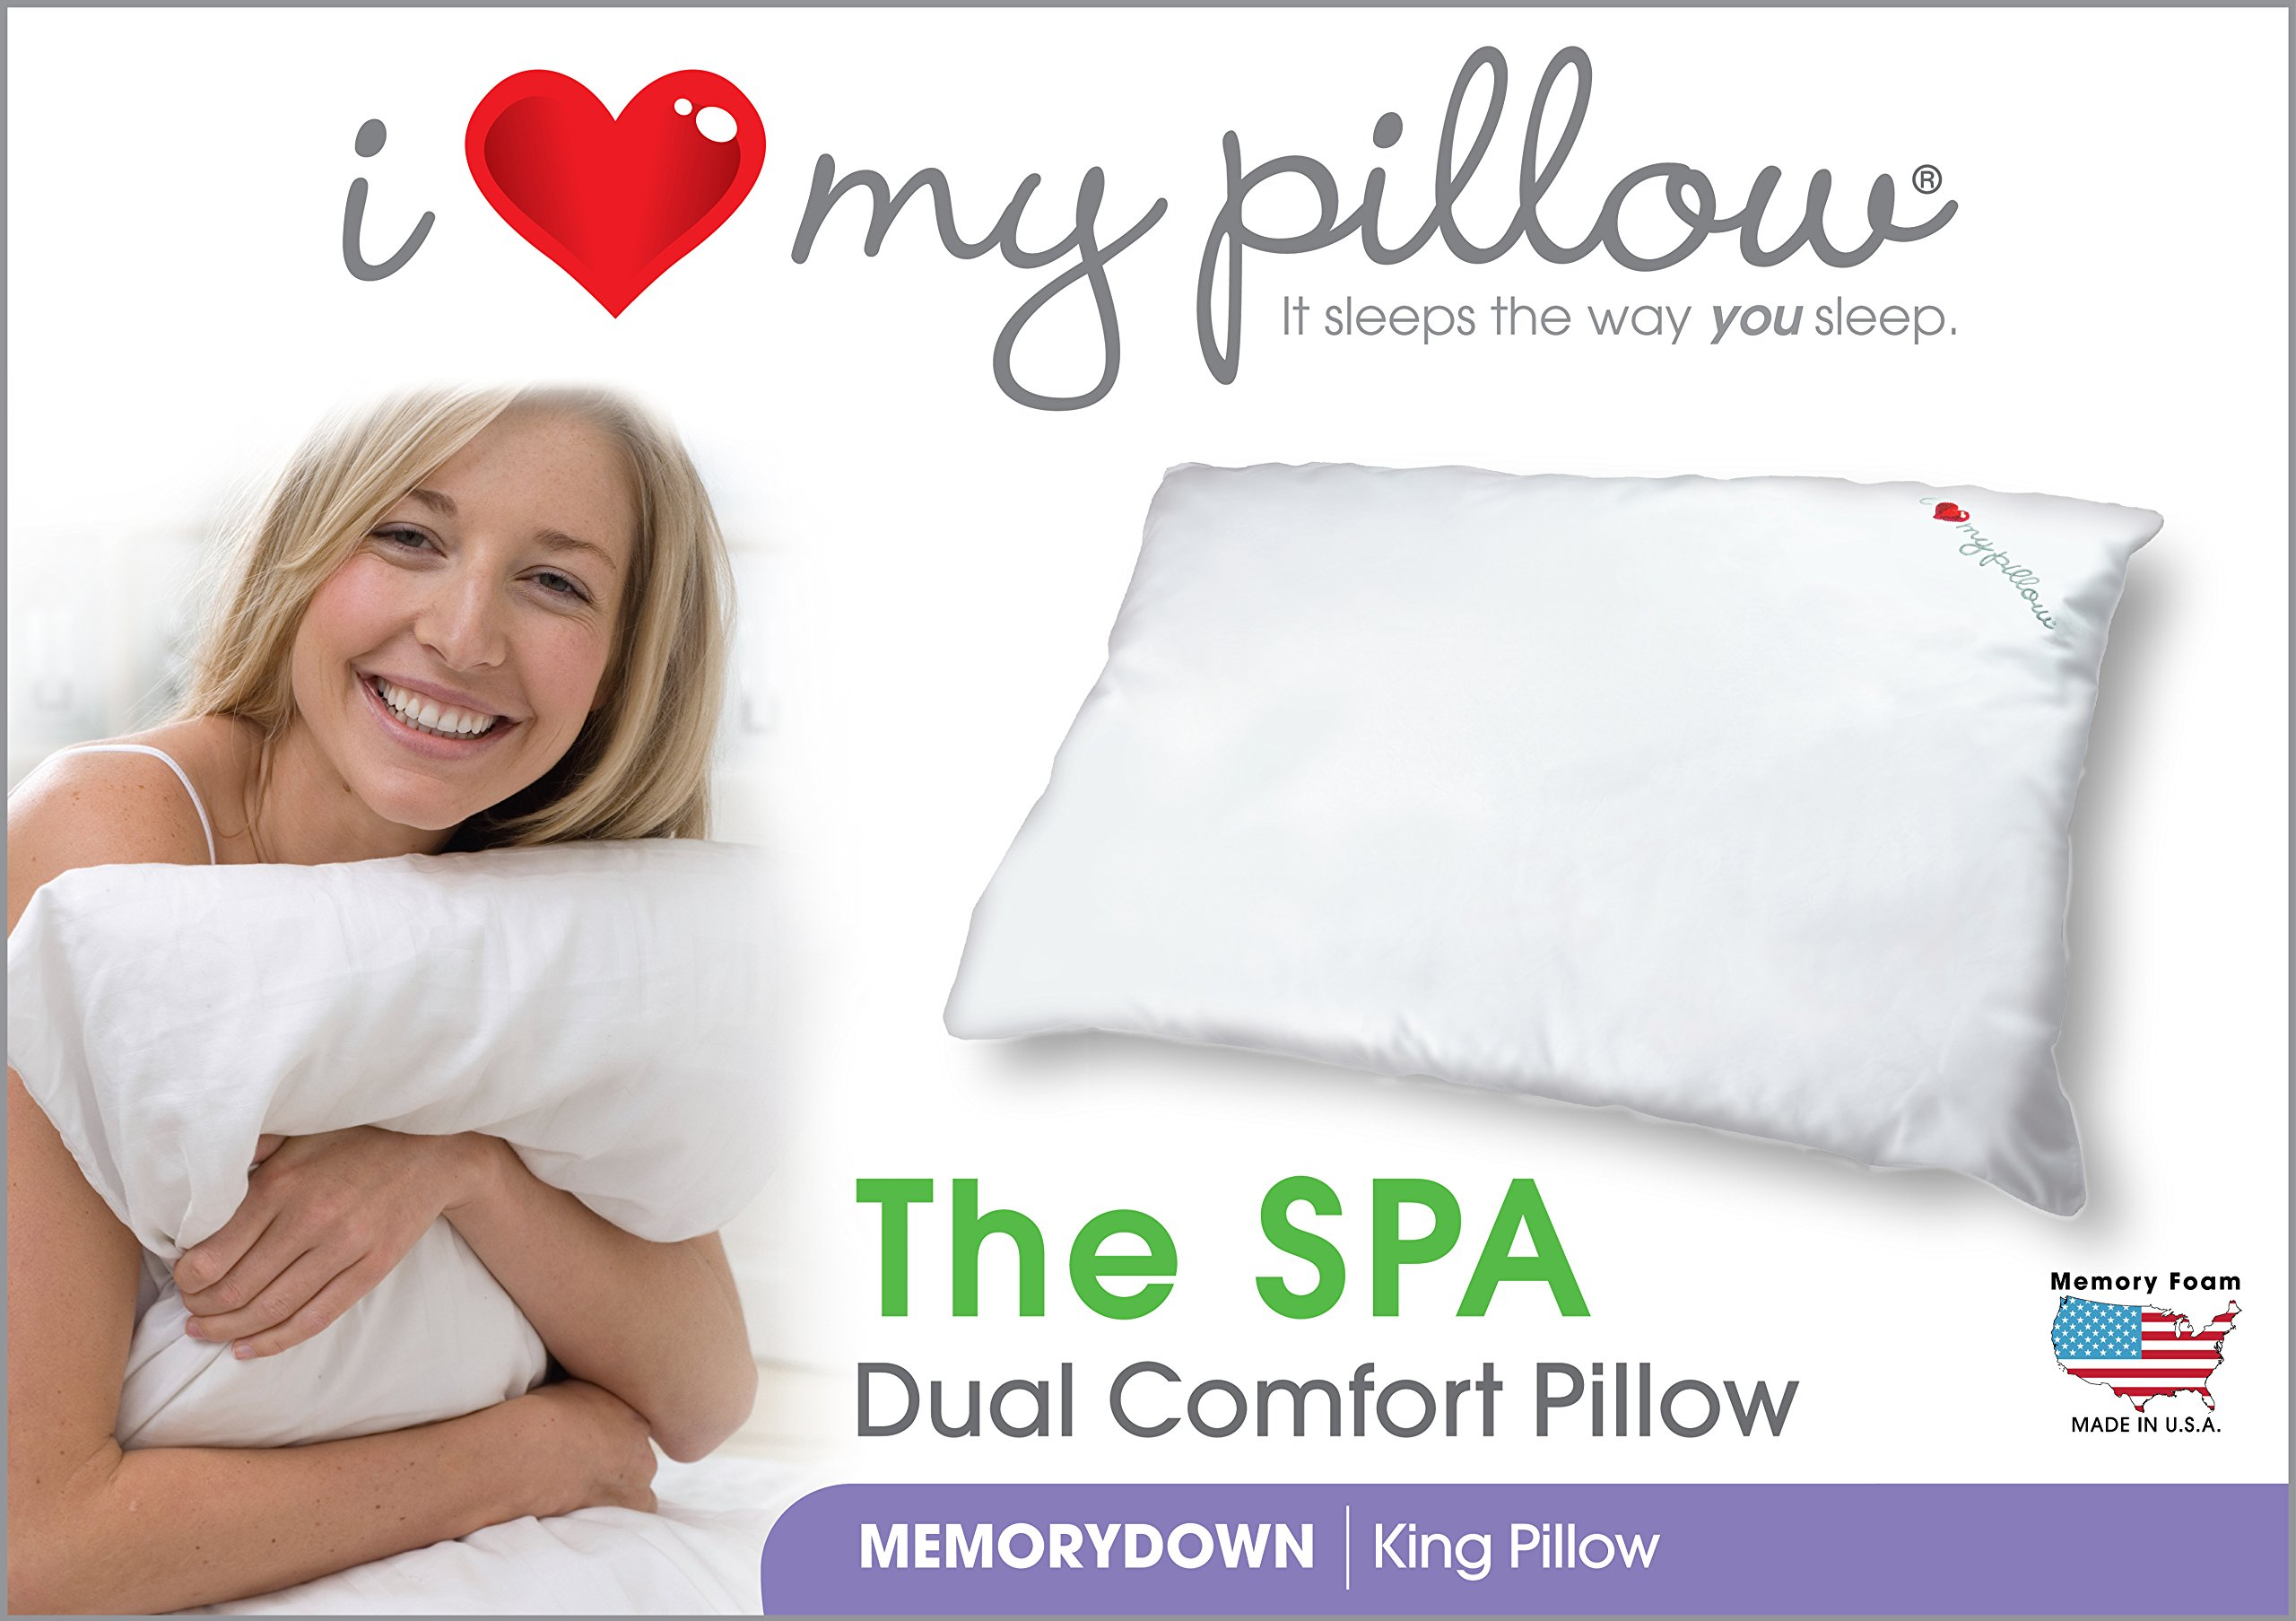 I Love My Pillow - The SPA, Dual Comfort Pillow, King size